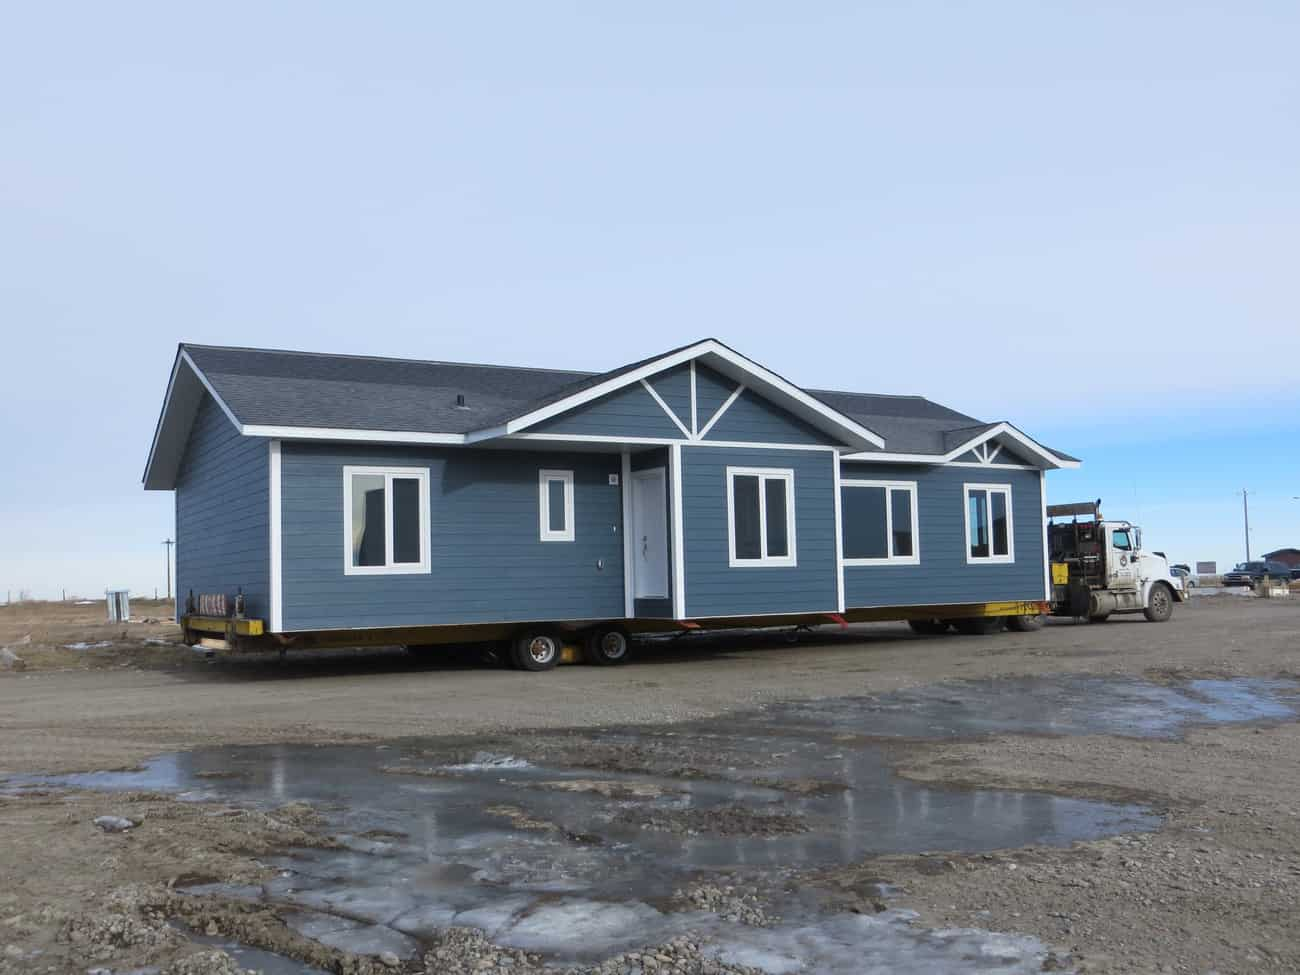 RTM Home, is a complete home. Manufactured, Prefabricated off site and transported in one piece to the building site.